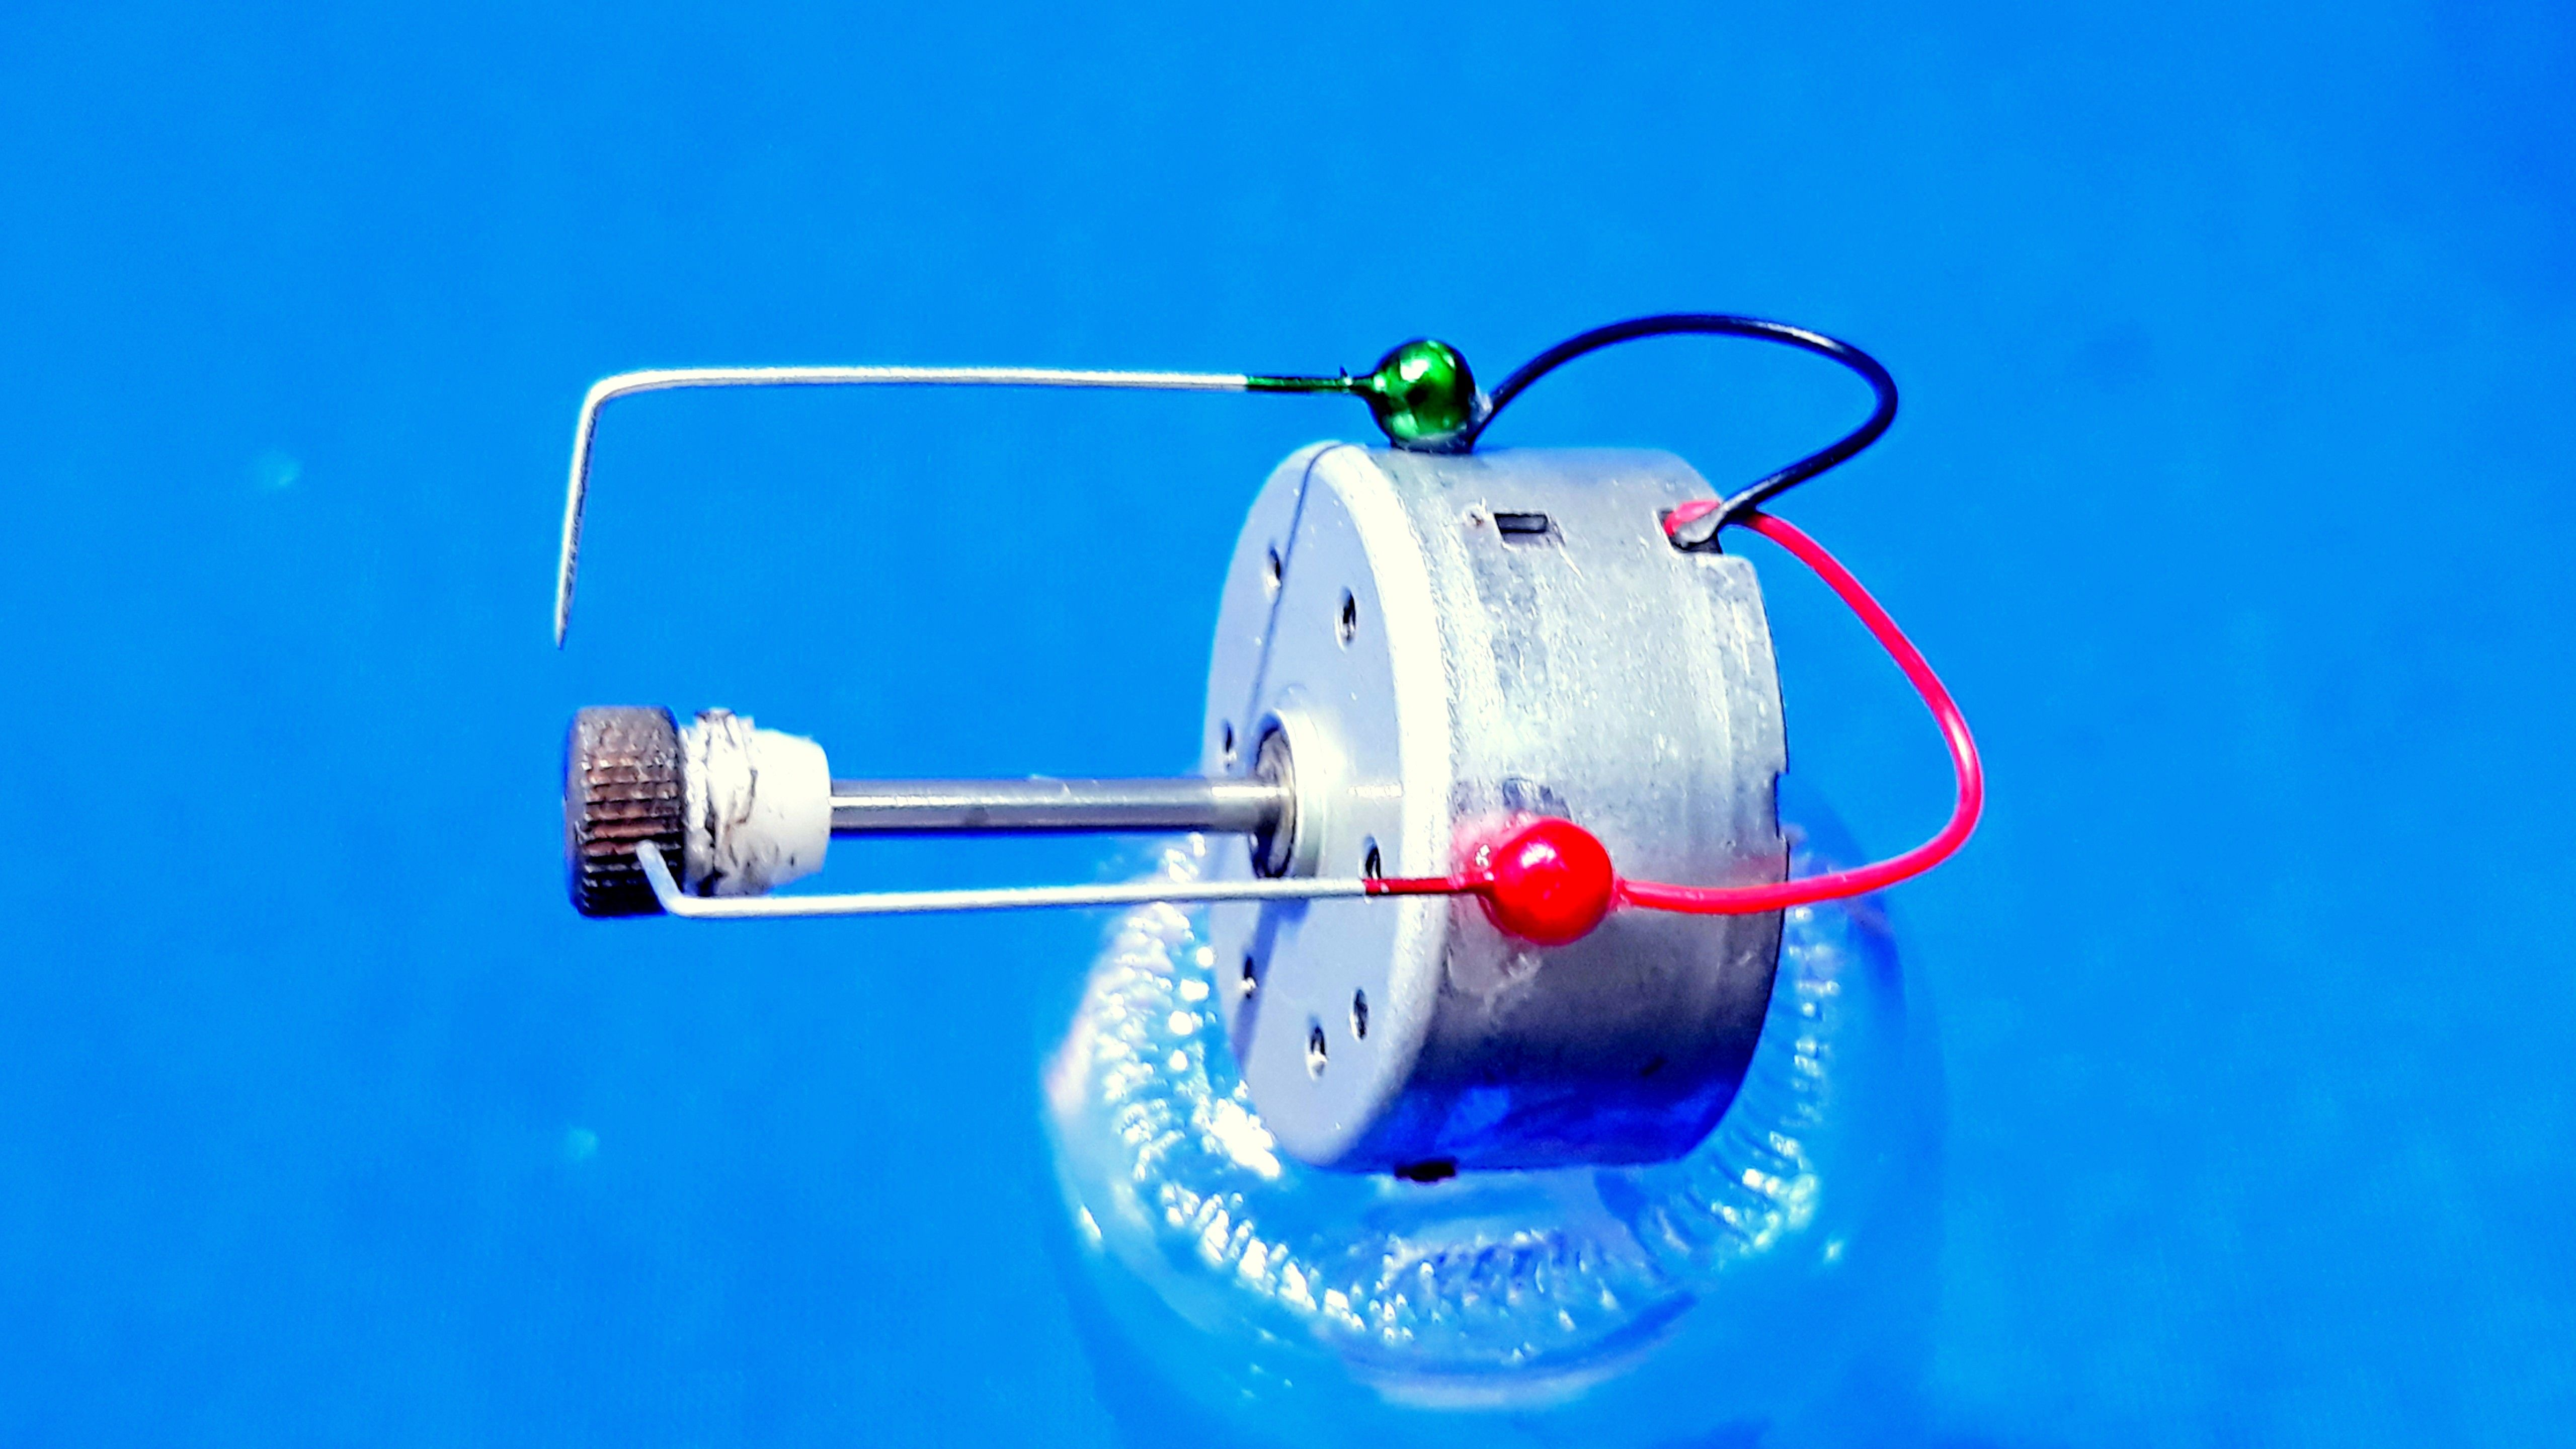 Simple Inventions Inventions Electronic Products Life Hacks